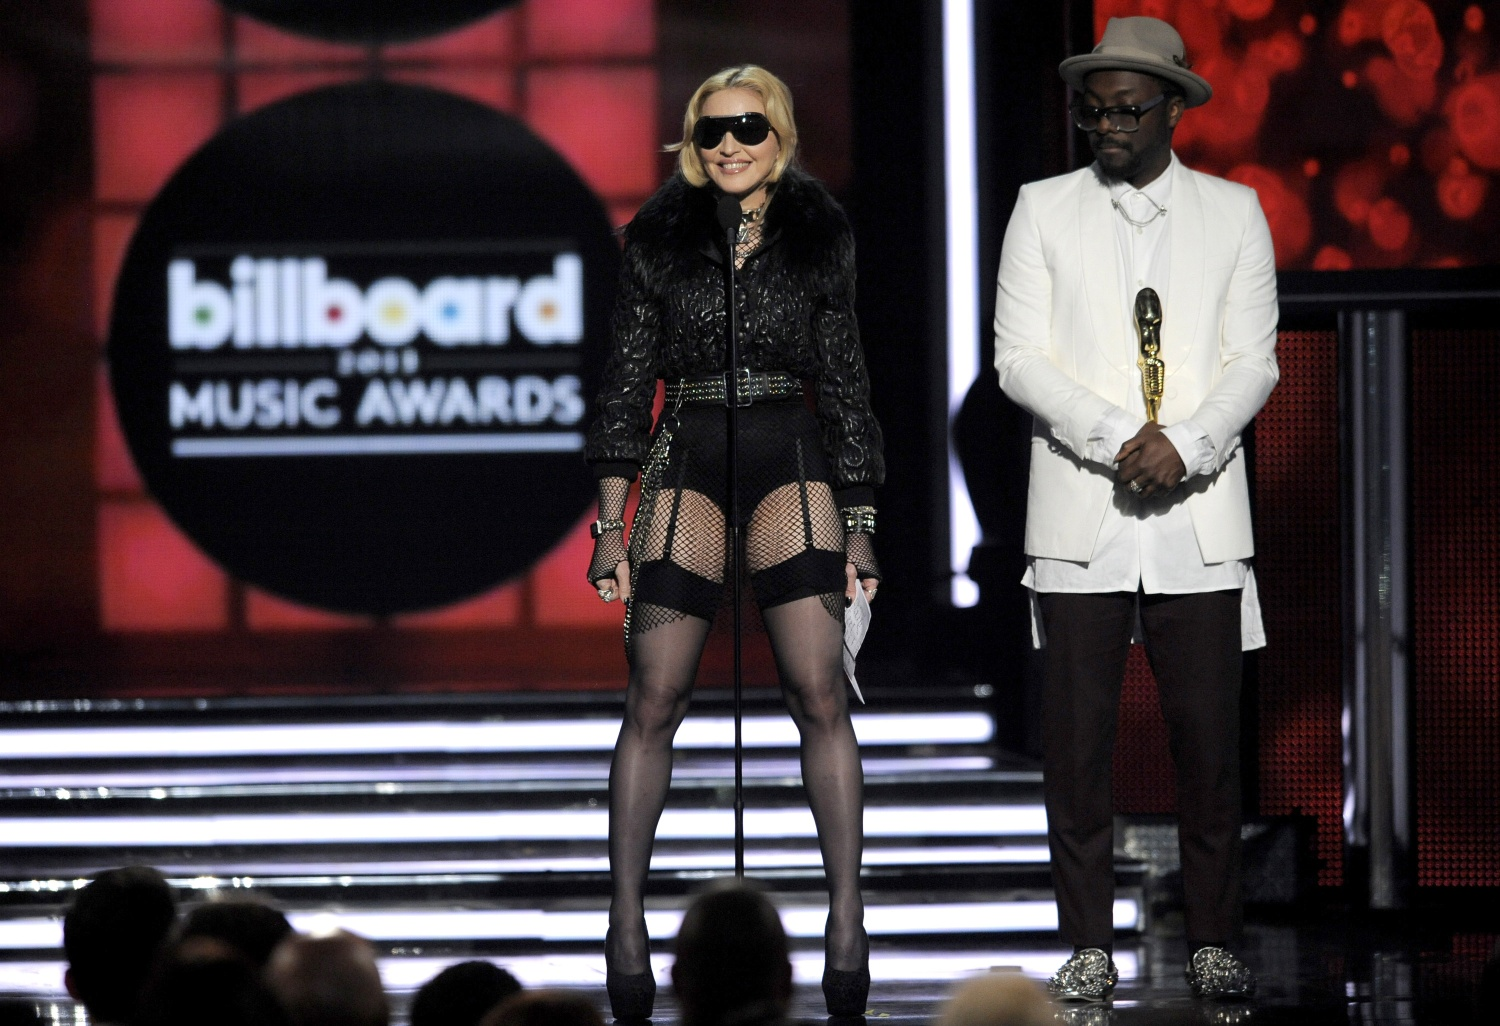 madonna-billboard-music-awards2013-7